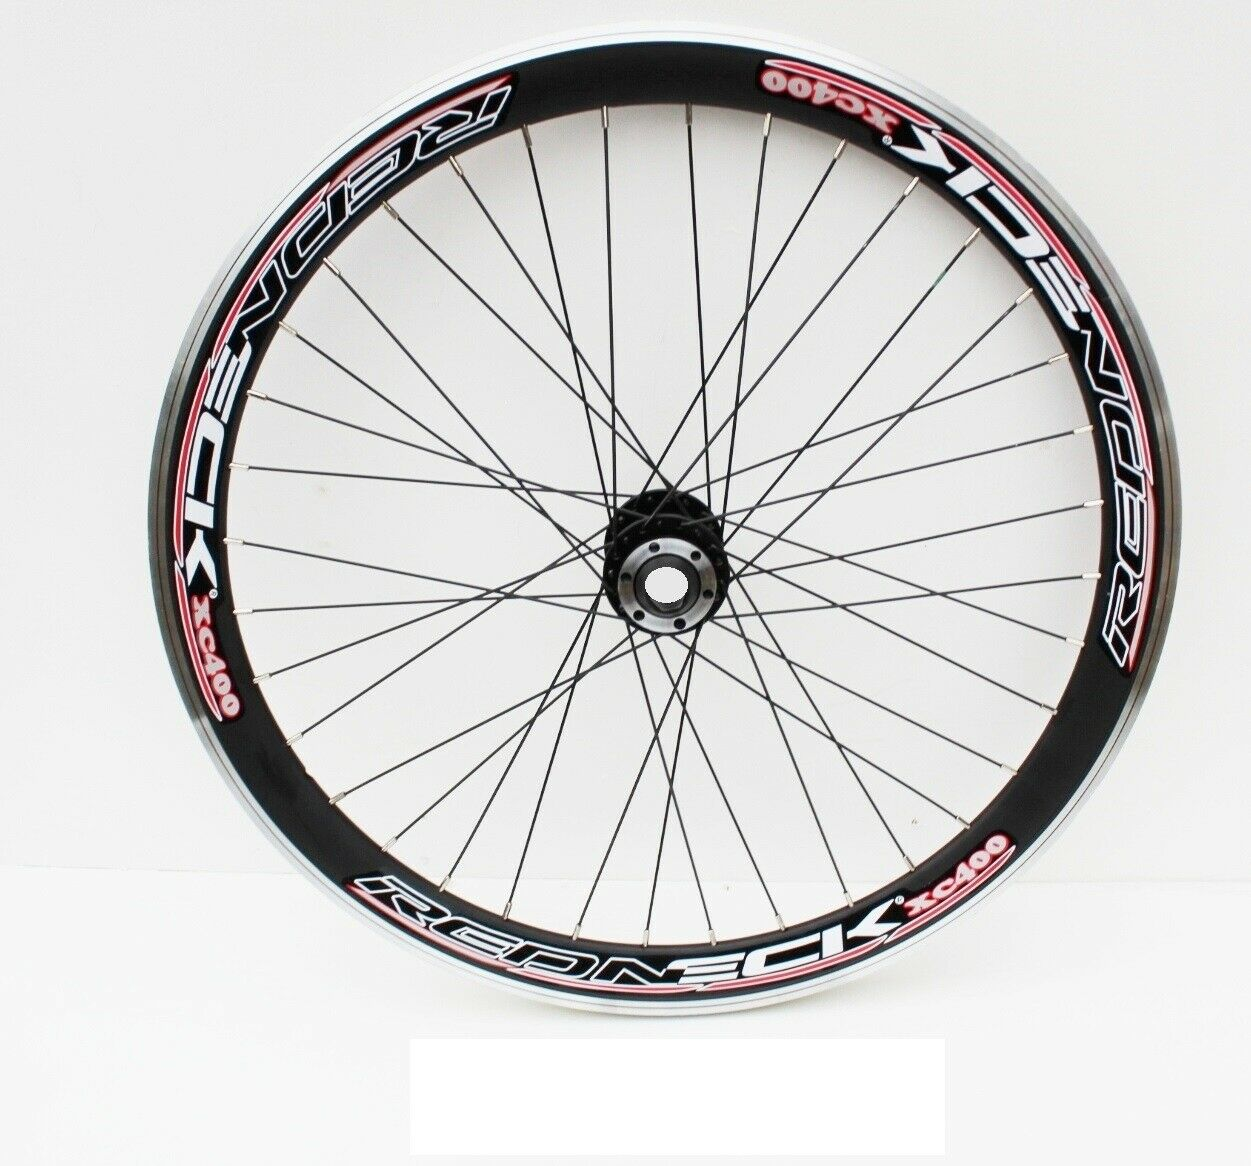 26  MTB DOWNHILL FRONT WHEEL, 20mm THROUGH AXLE TYPE, BOMBPROOF